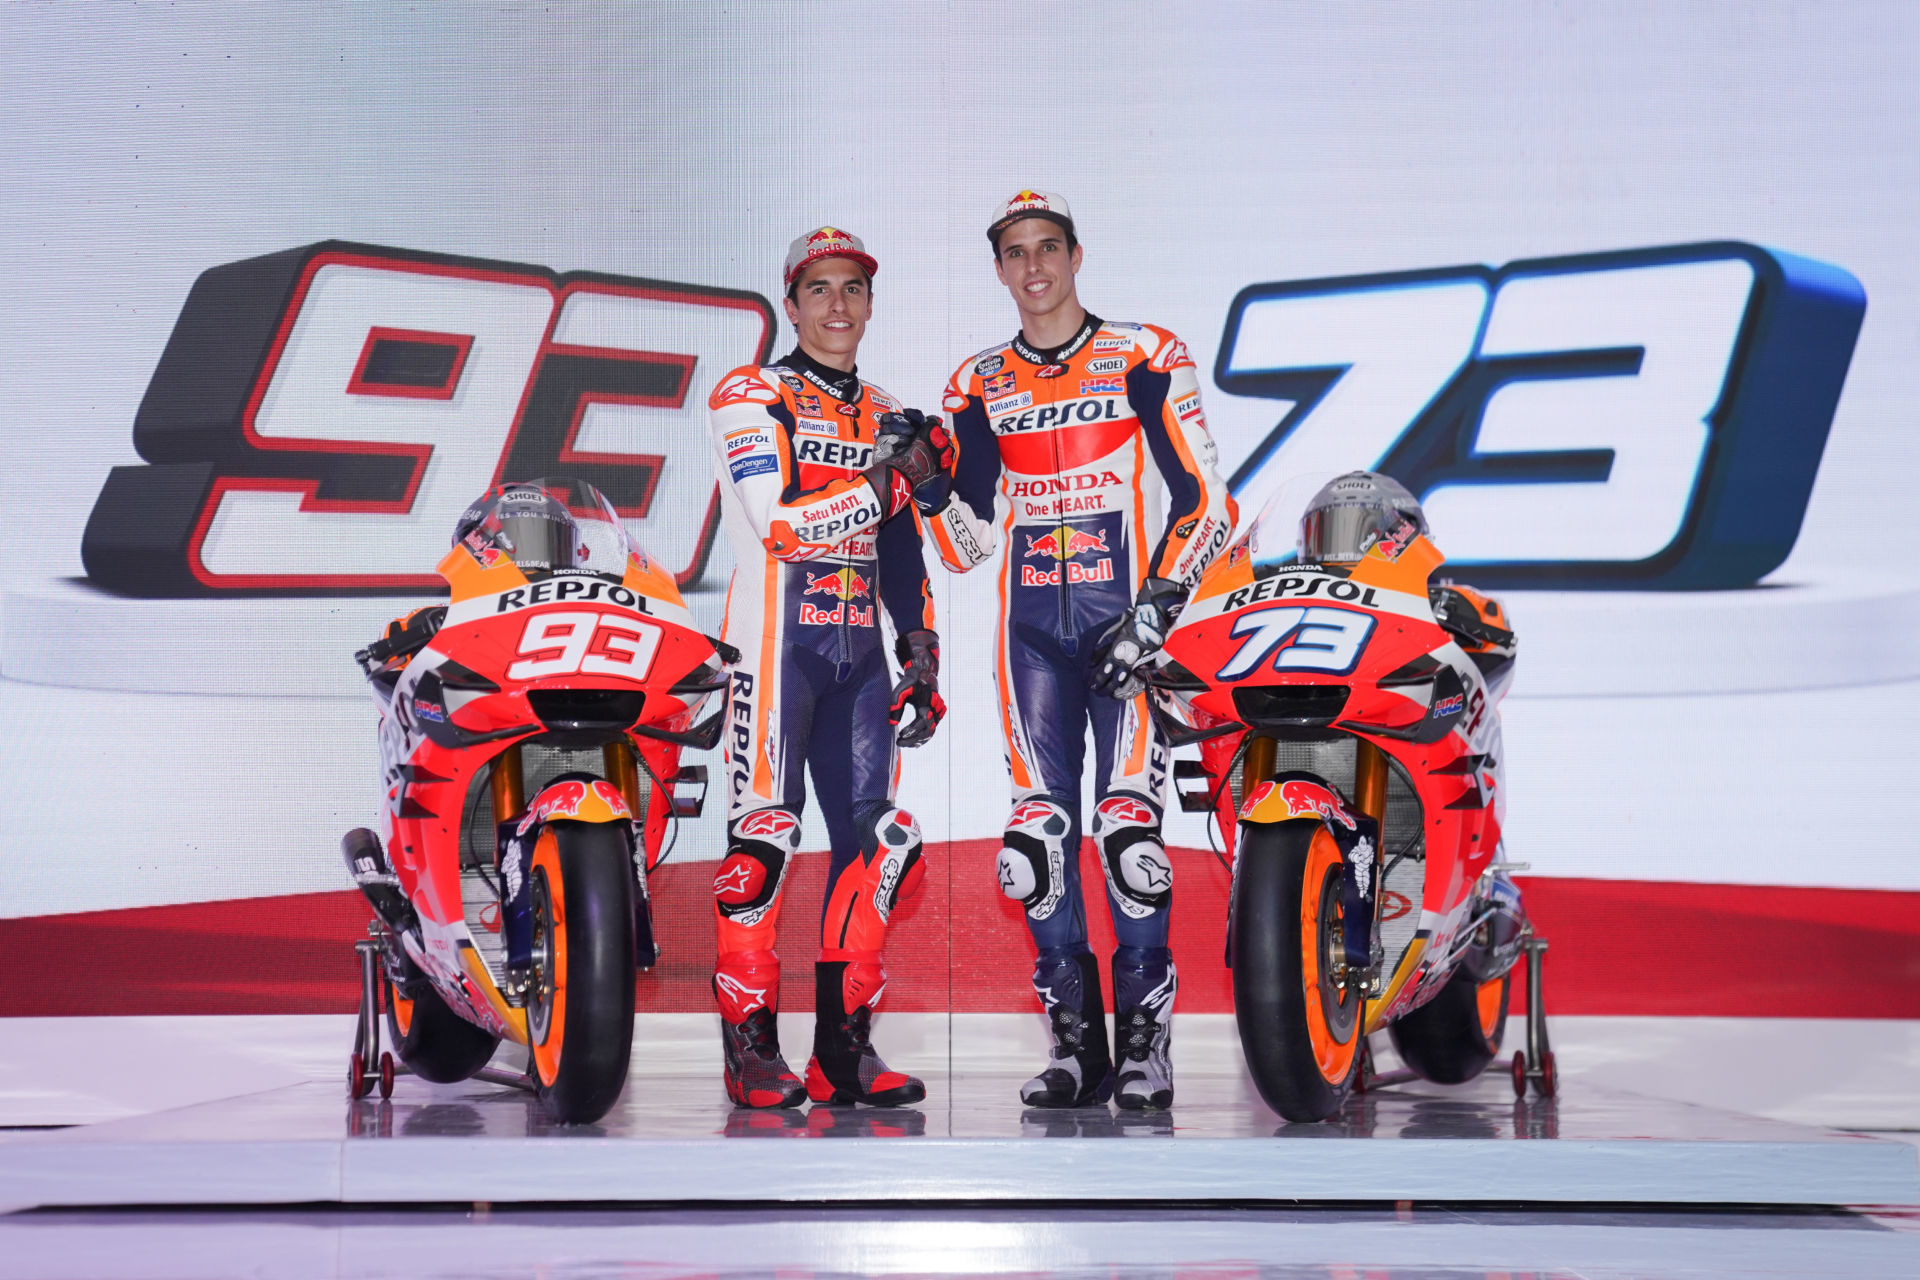 Brothers Marc Marquez (left) and Alex Marquez (right) at the official Repsol Honda MotoGP team introduction in Indonesia. Photo courtesy of Honda Racing Corporation (HRC).